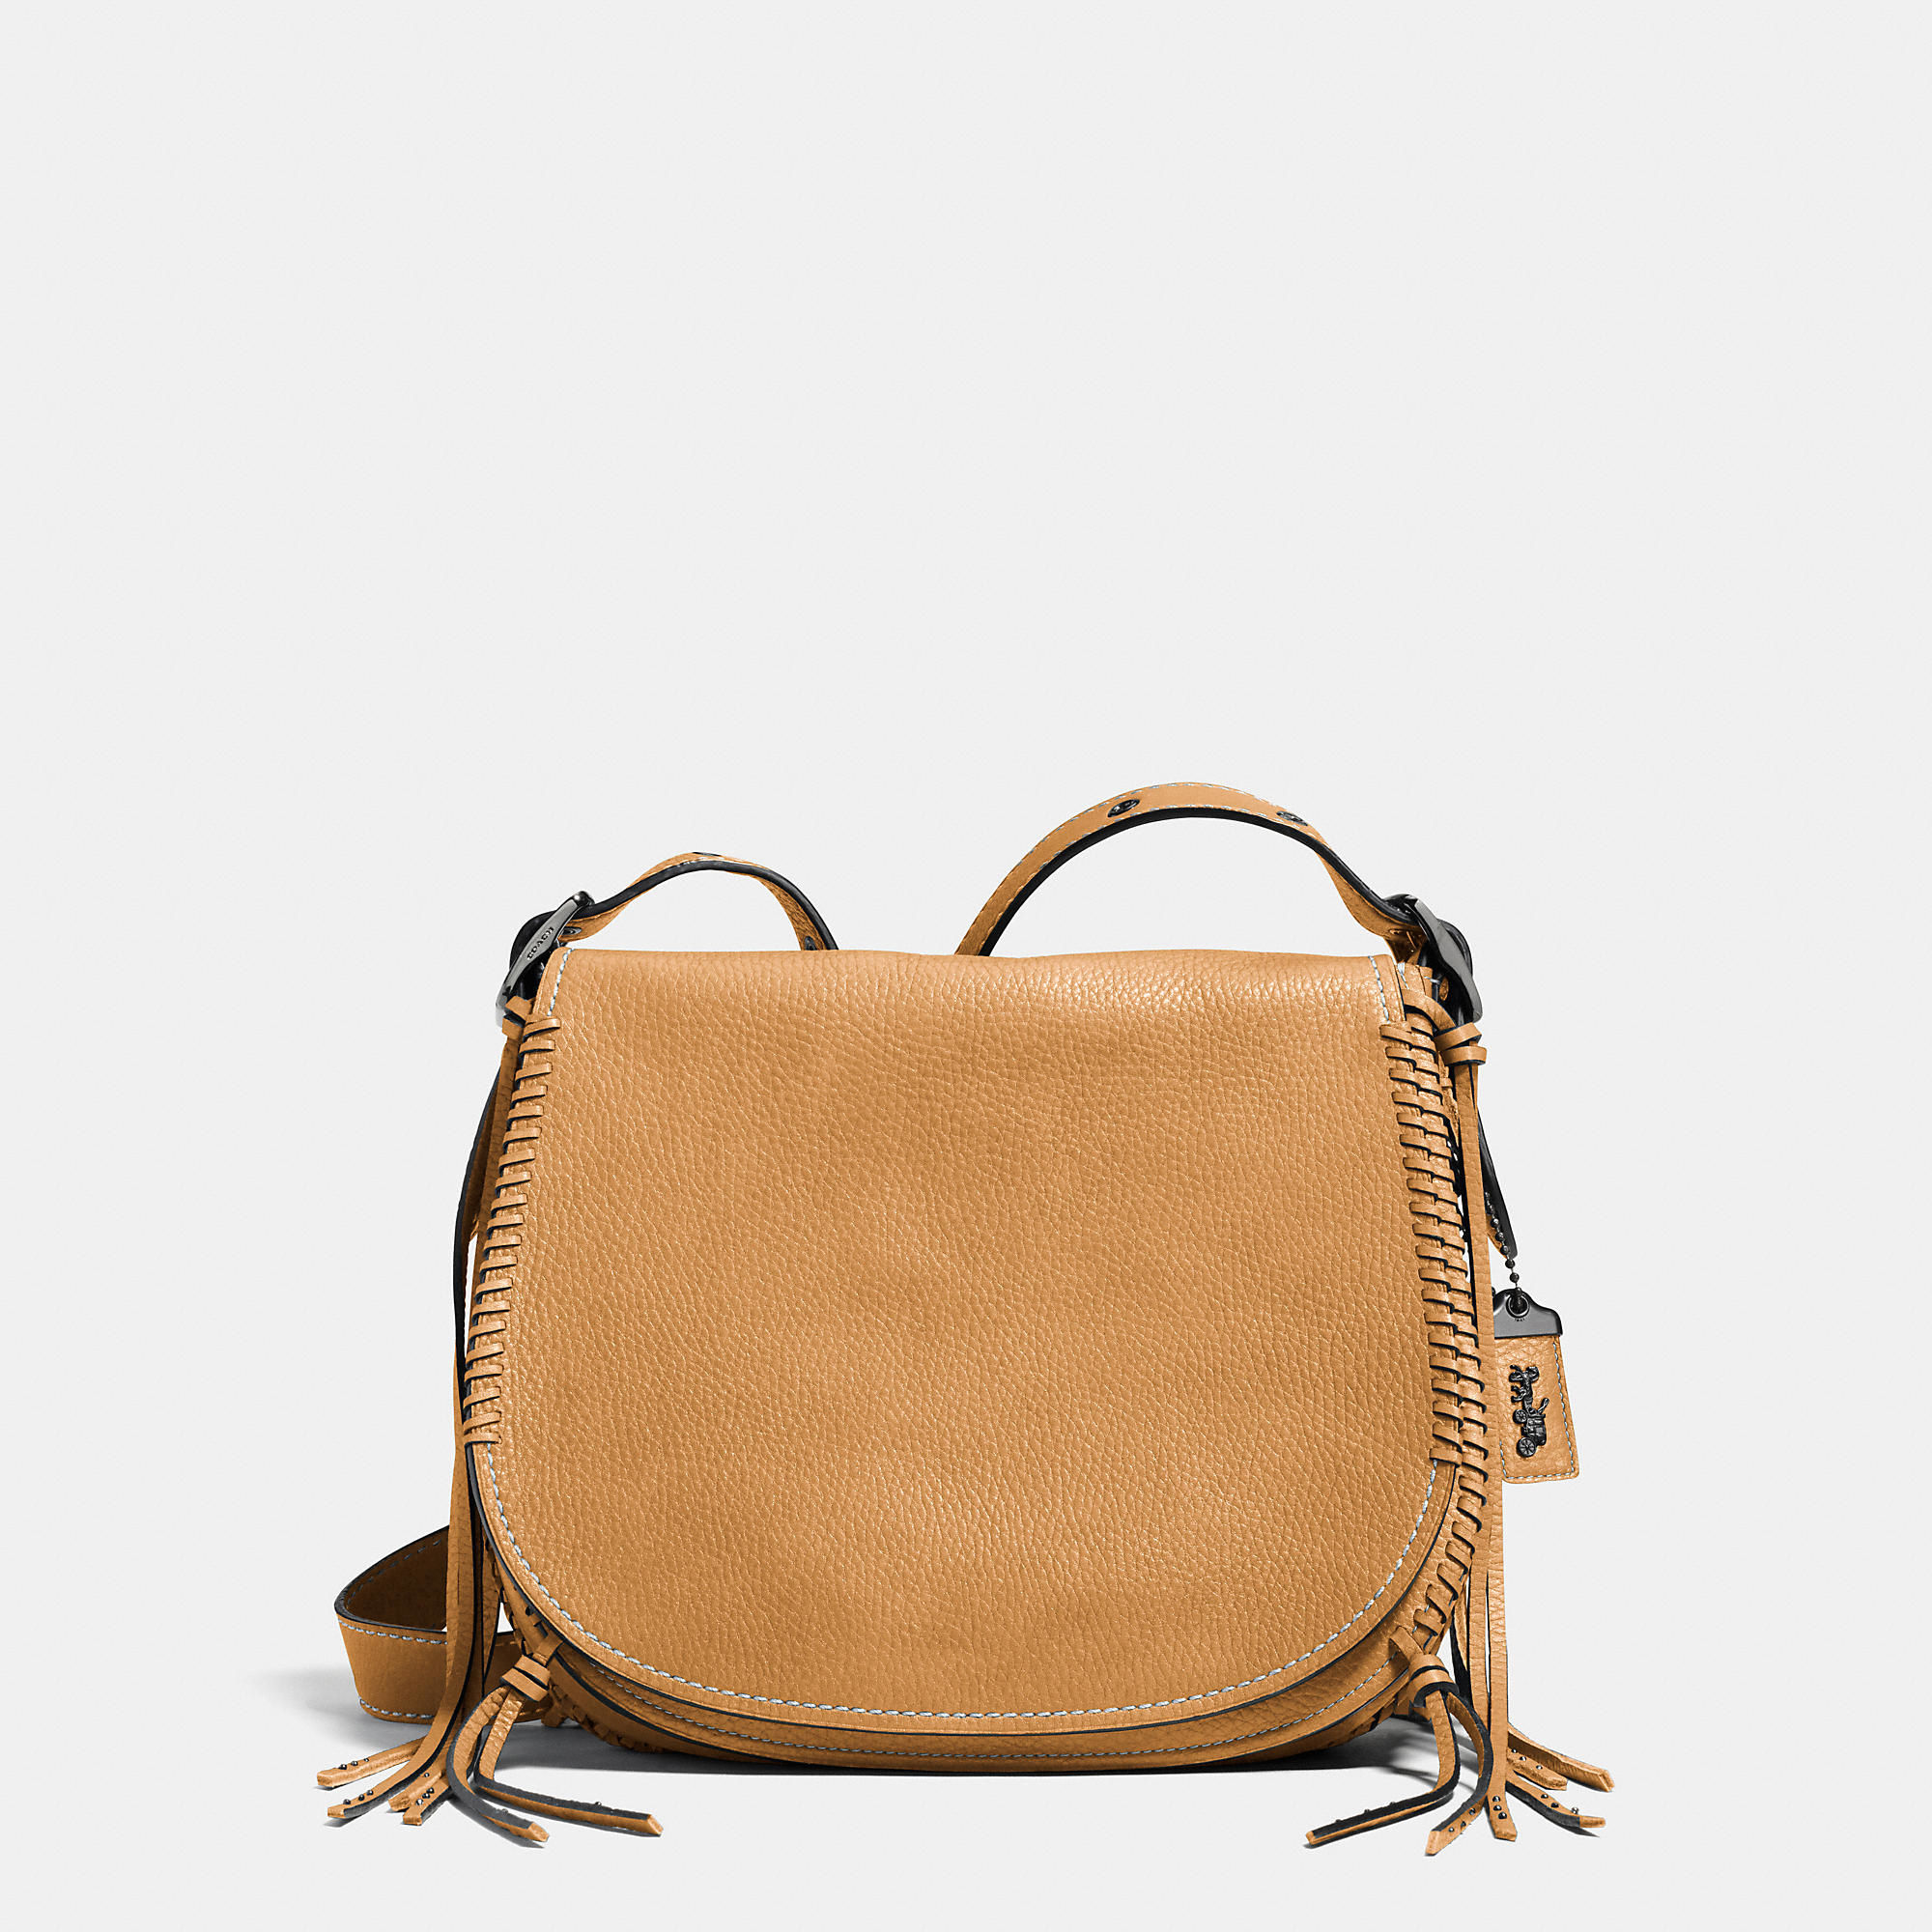 Coach Whiplash Saddle Bag In Leather In Brown Lyst